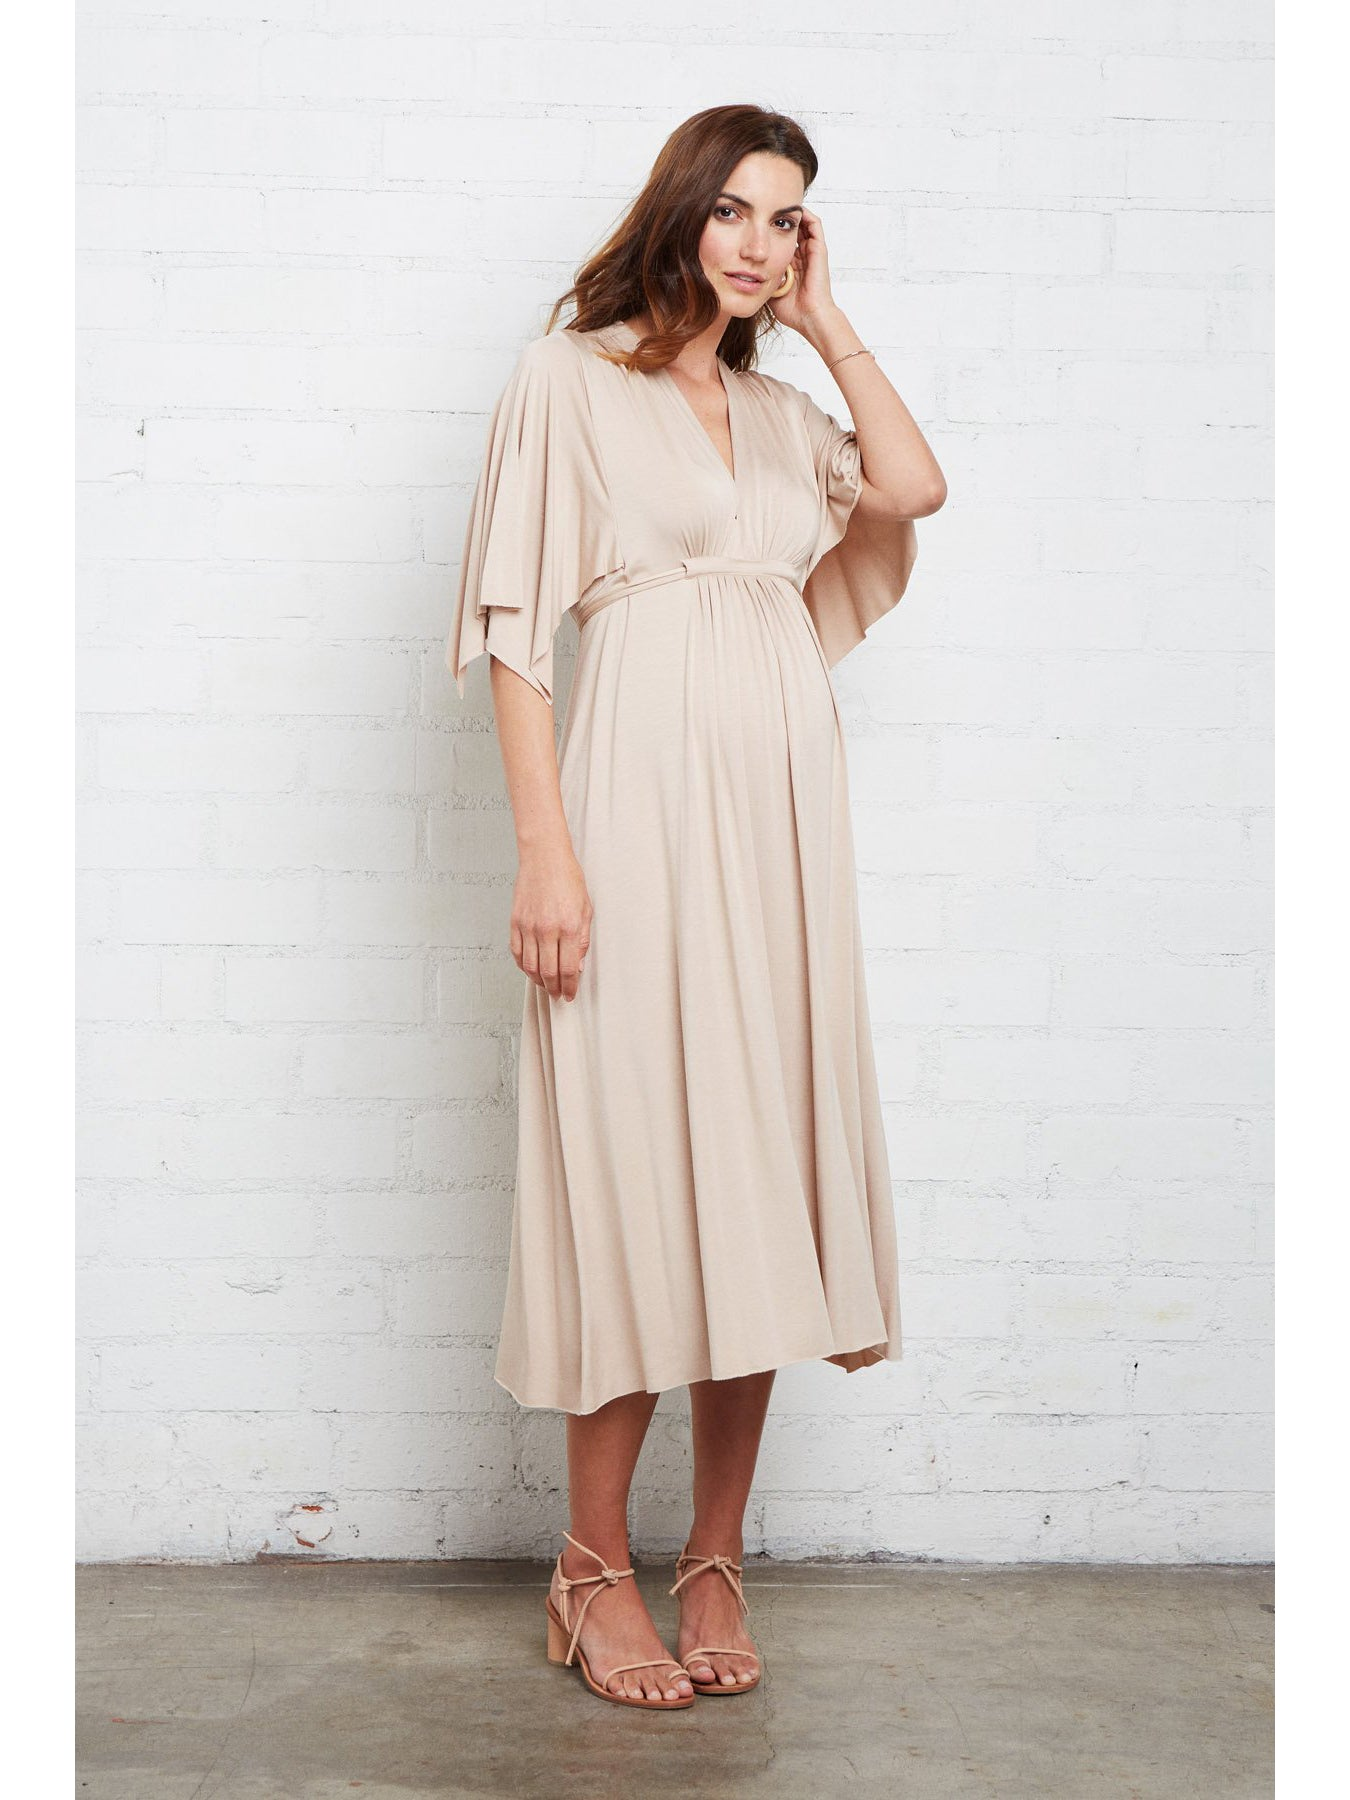 Rachel Pally Maternity Mid-Length Caftan Midi Dress - Bamboo | TILDEN